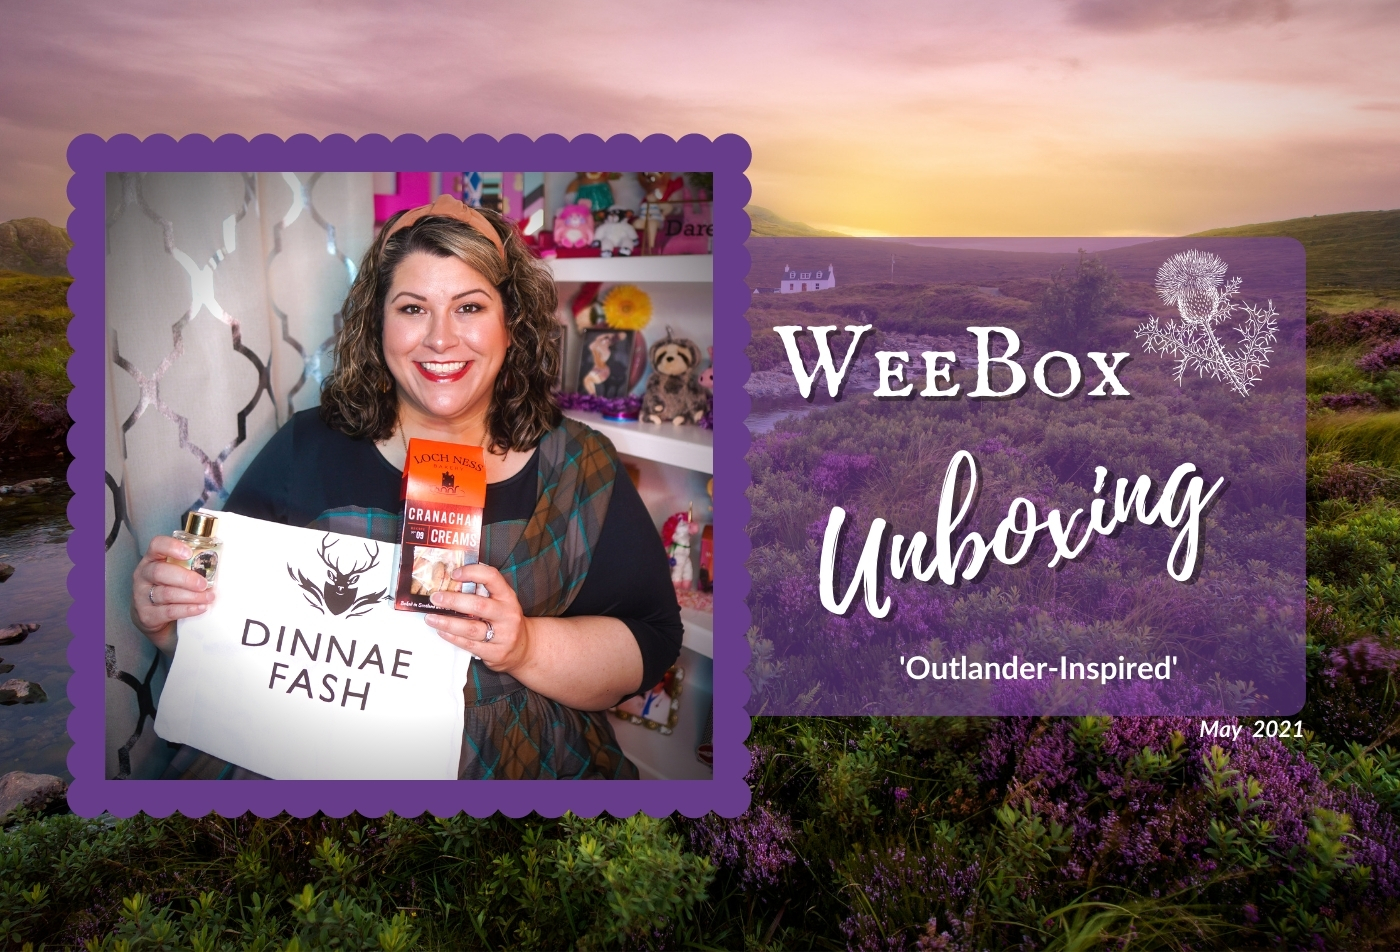 Weebox Unboxing: 'Outlander-Inspired' (May 2021)